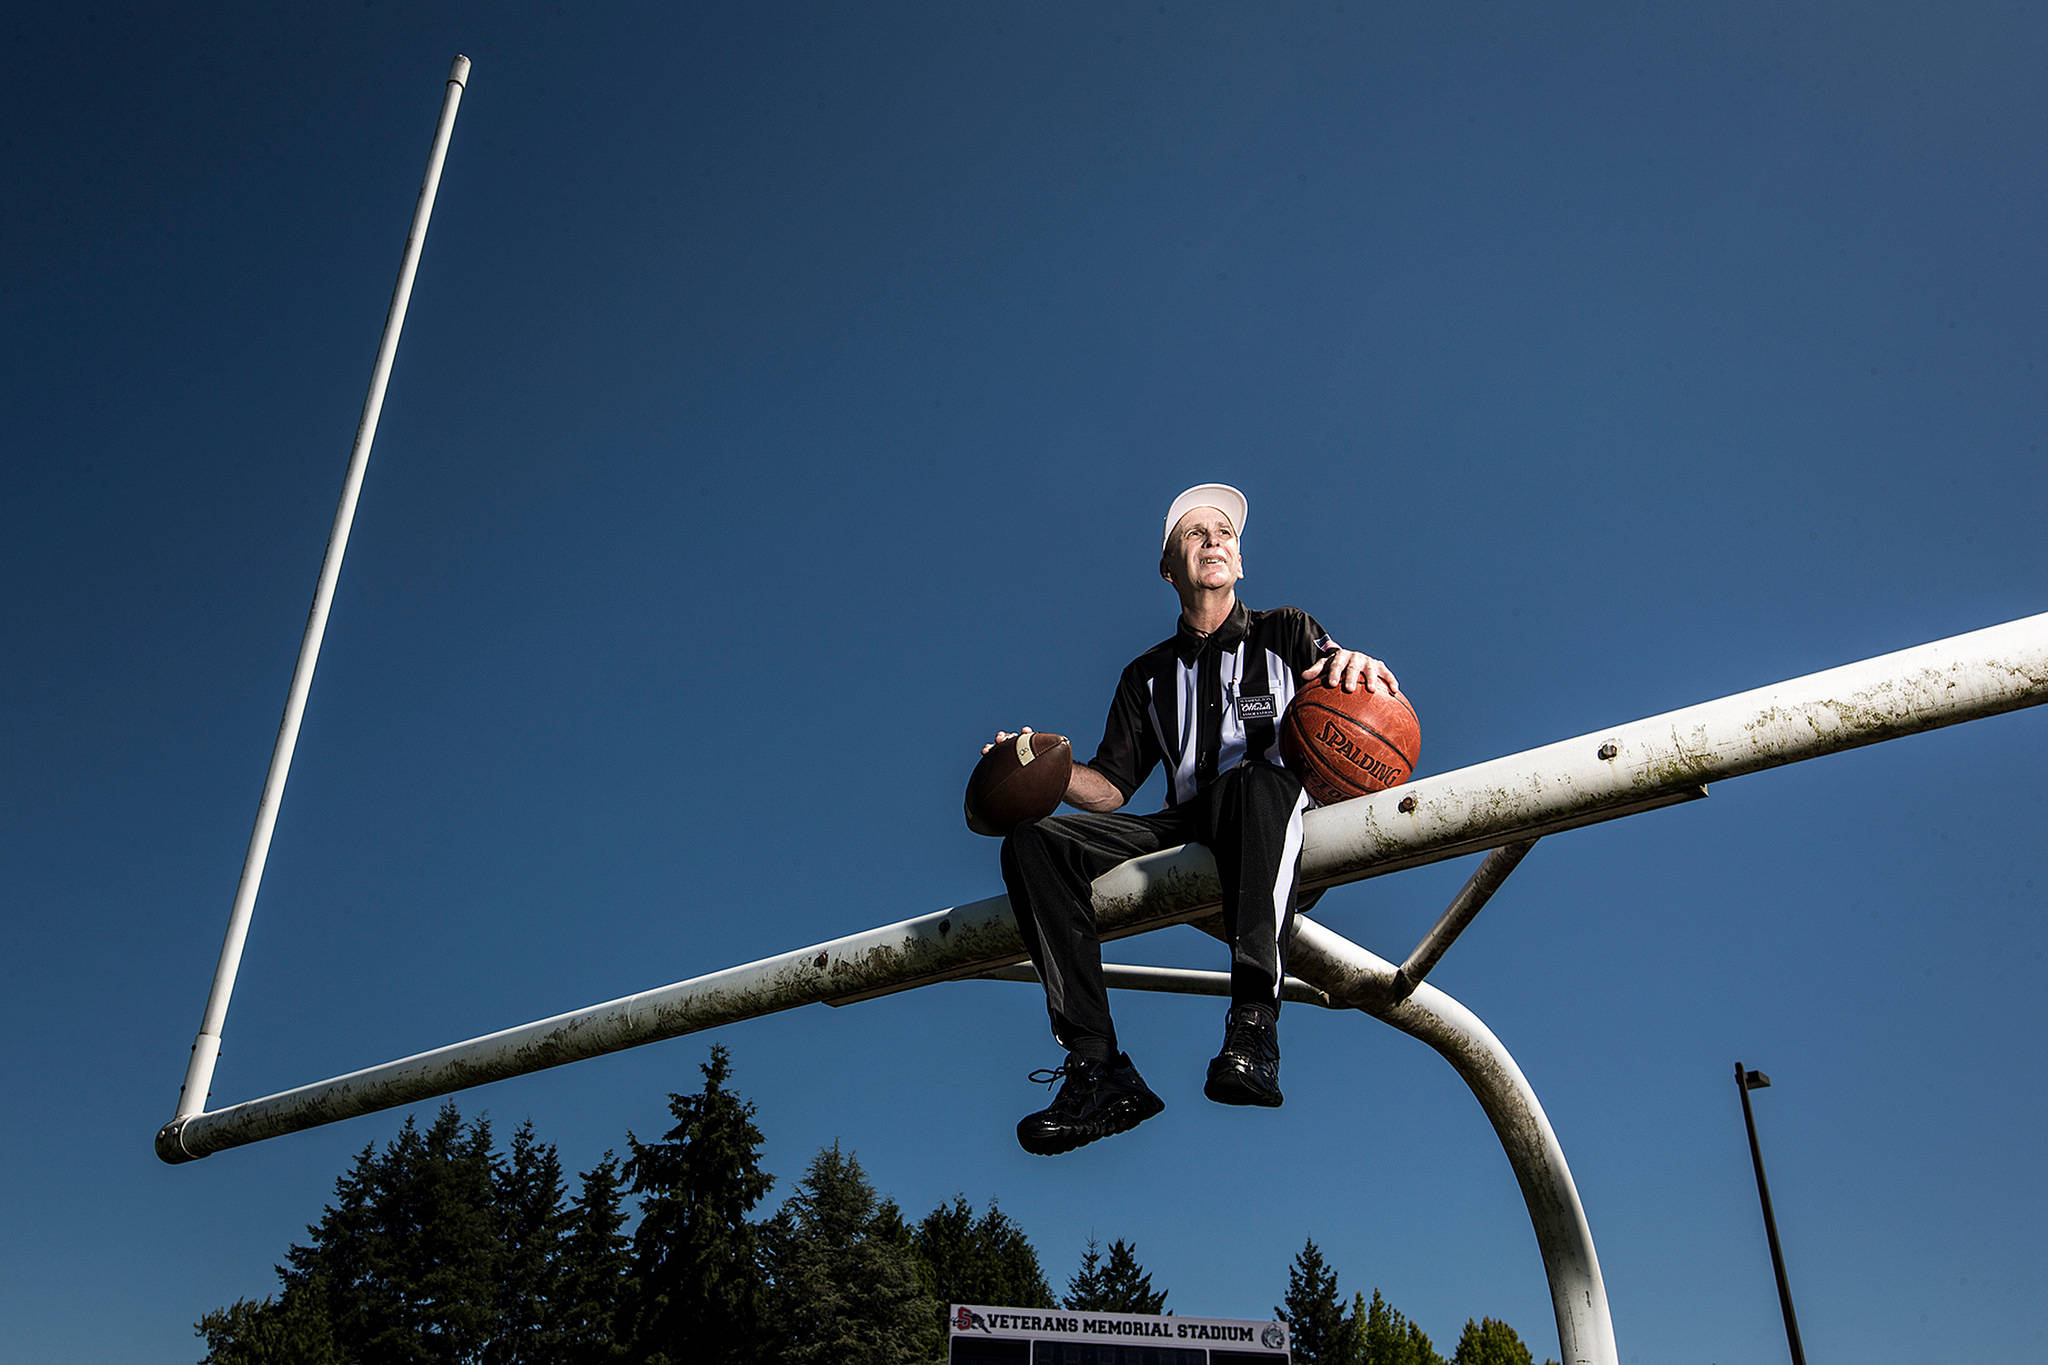 With more than 40 years of officiating under his belt for Snohomish County prep football and basketball, Tom Freal, of Lake Stevens, was inducted into the Washington Officials Hall of Fame at an Aug. 4 ceremony in Yakima. (Ian Terry / The Herald)